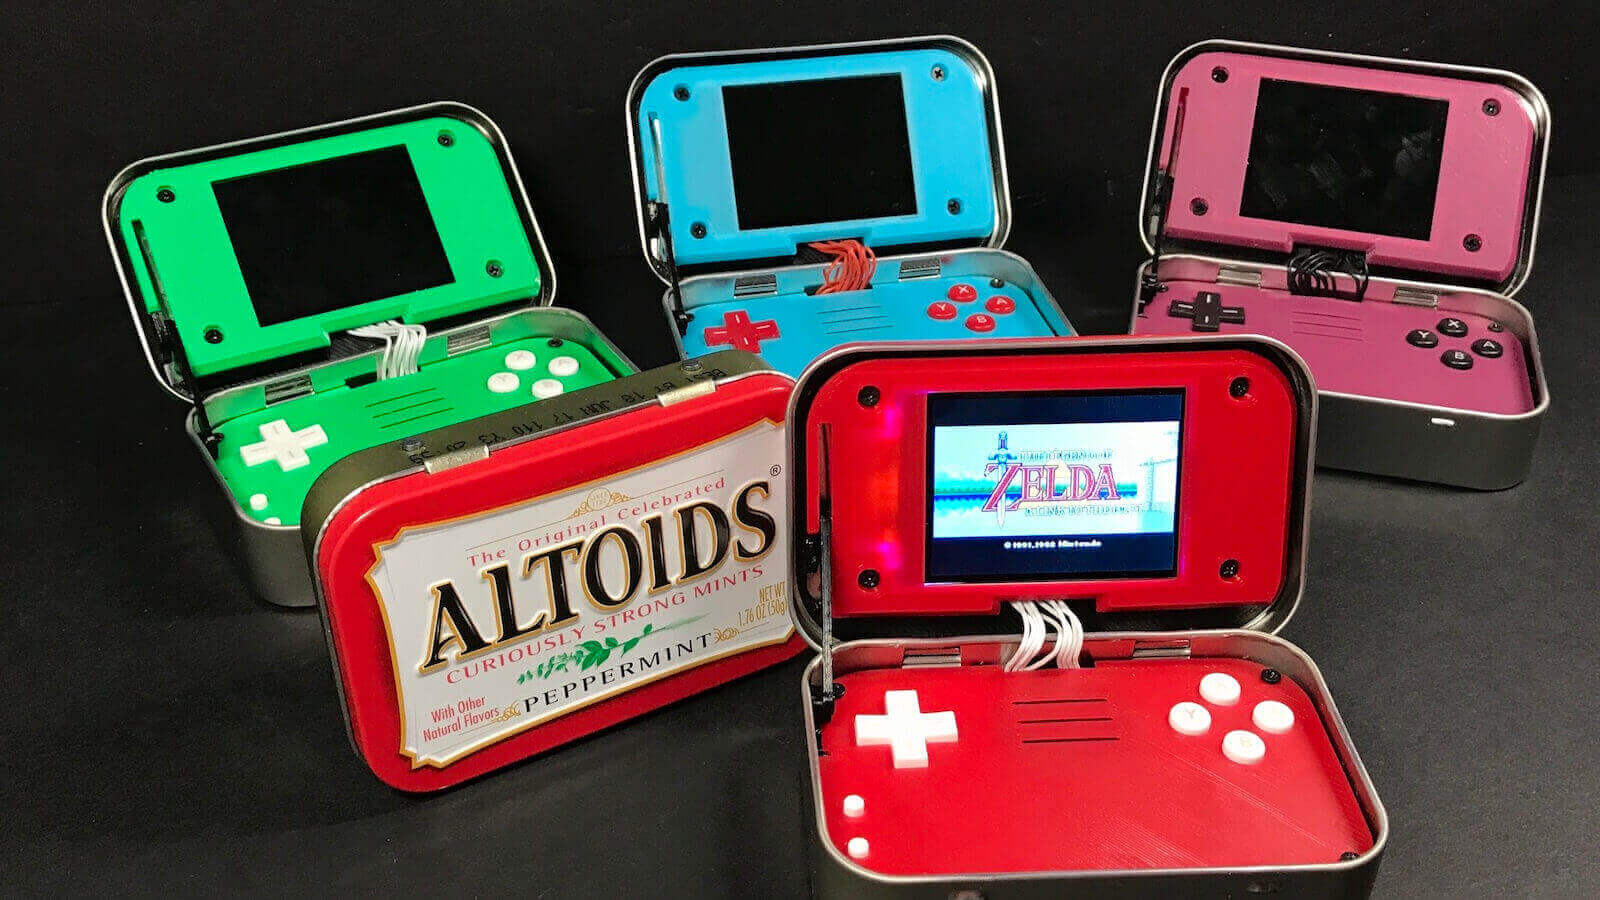 mintyPi 2.0 Hides a Retro Games Console Inside an Altoids Tin | All3DP